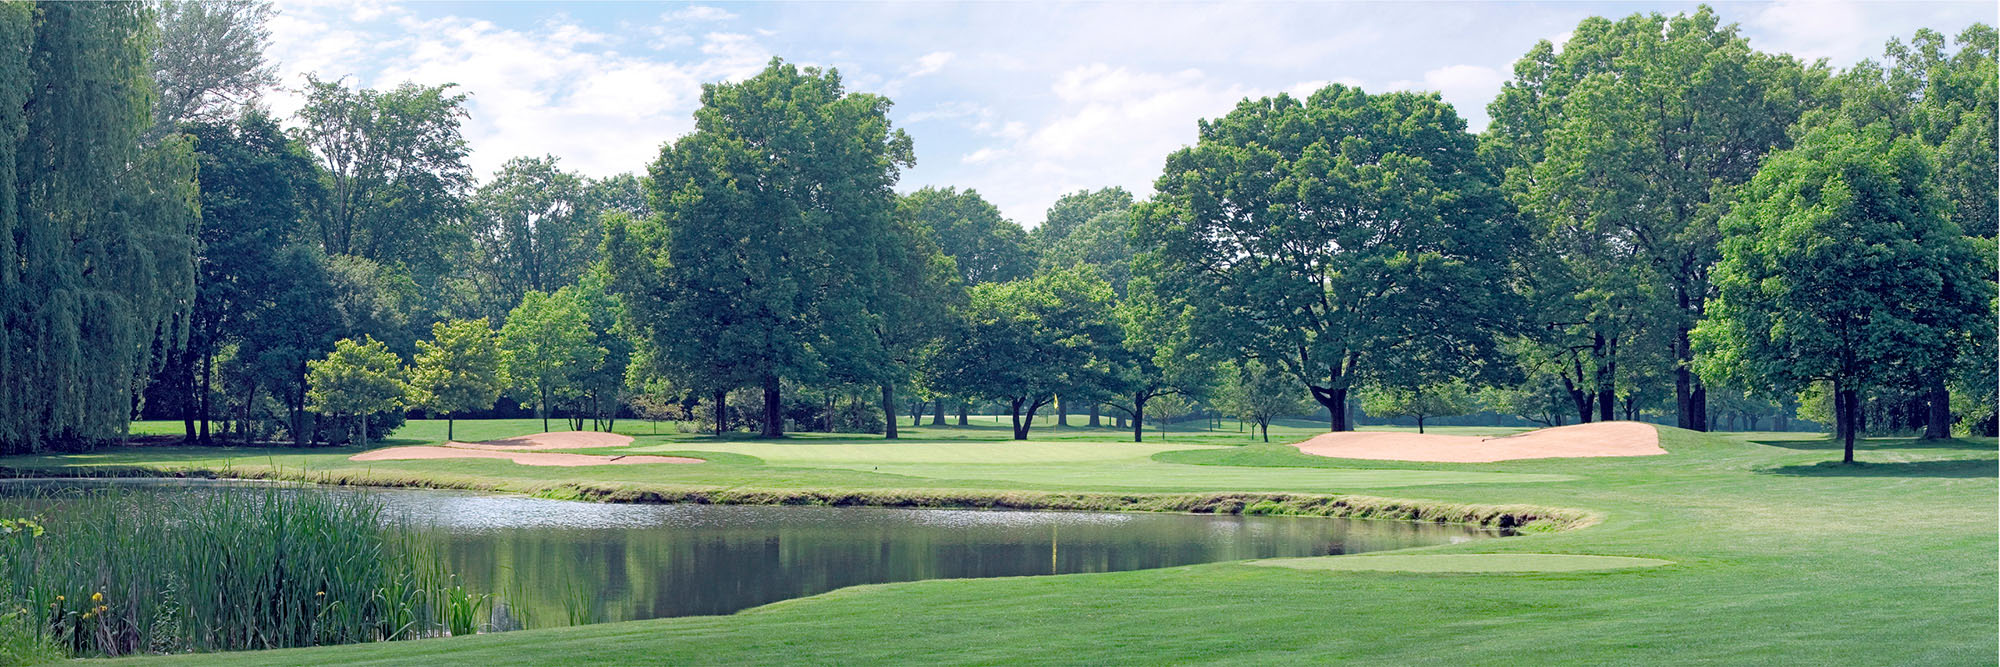 Golf Course Image - Knollwood No. 7